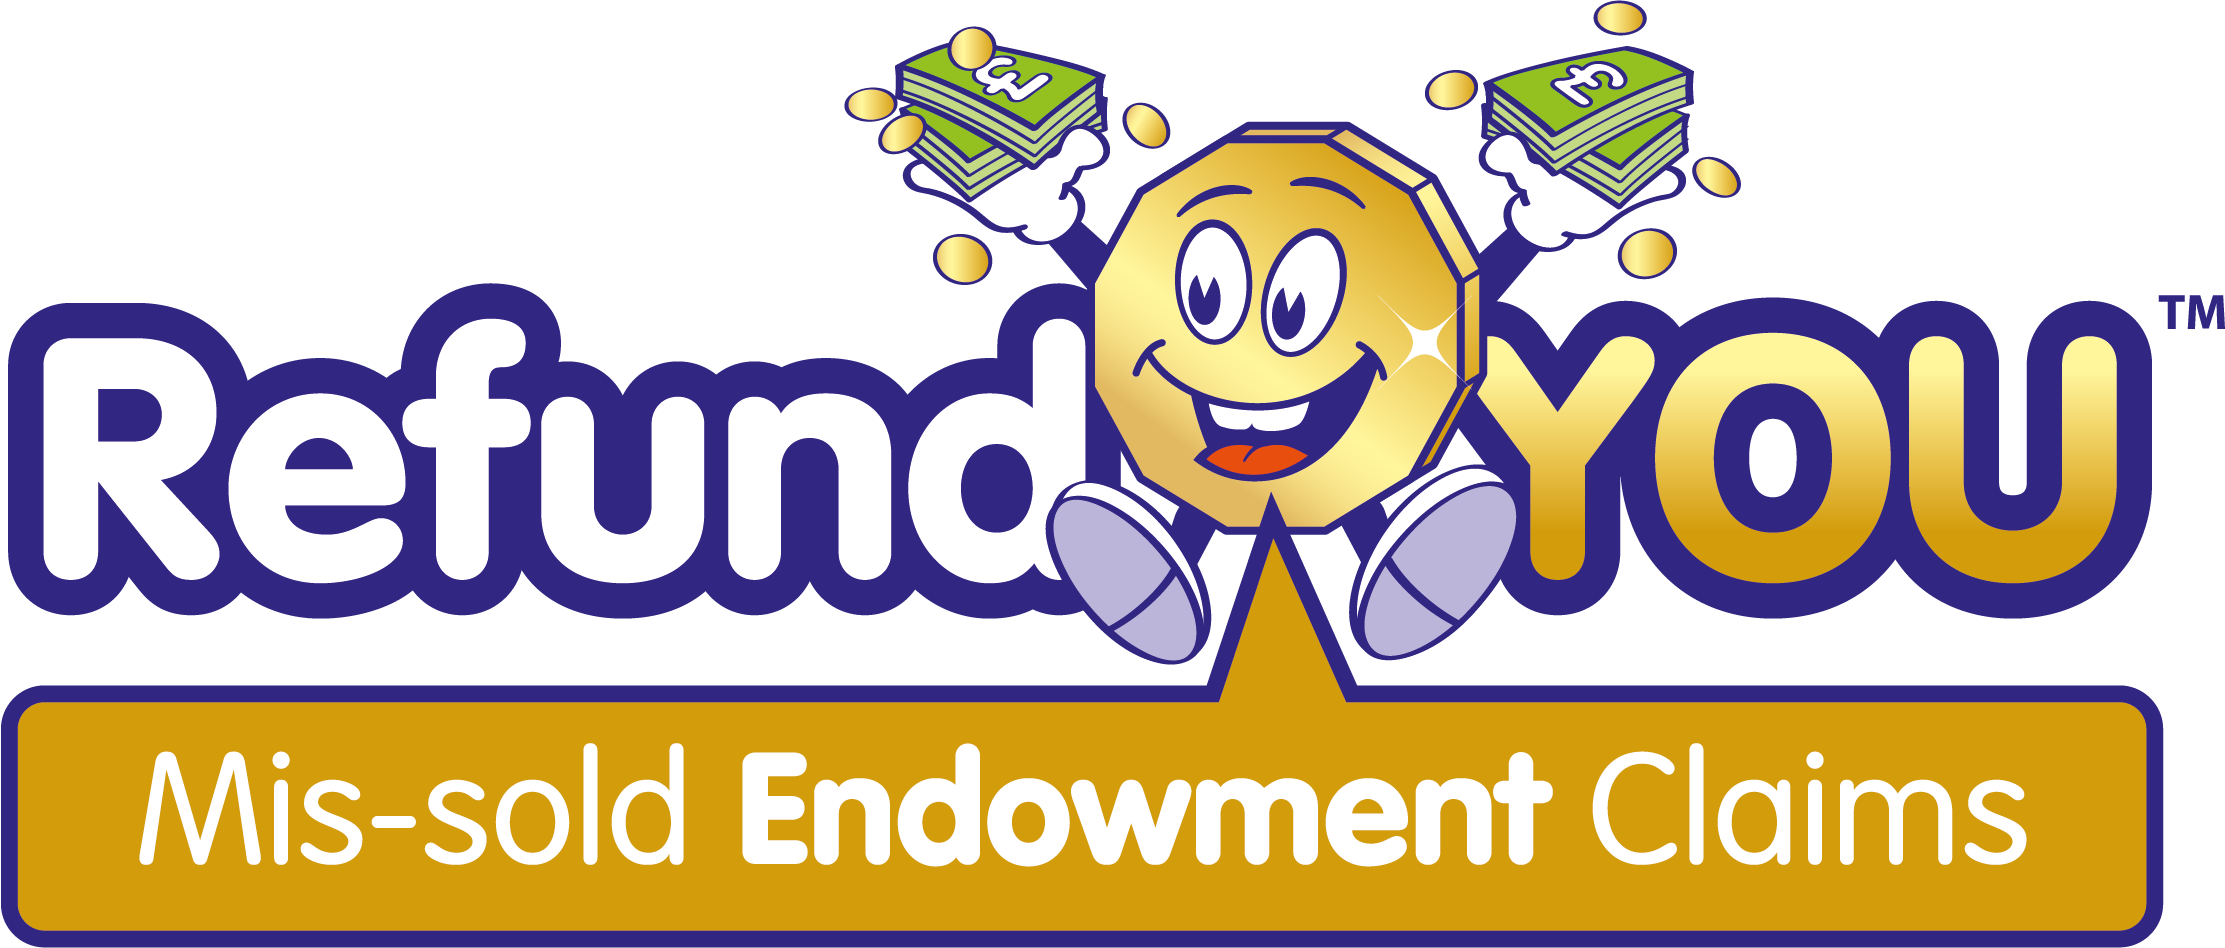 http://www.refundyou.co.uk/financial-claims/endowments/